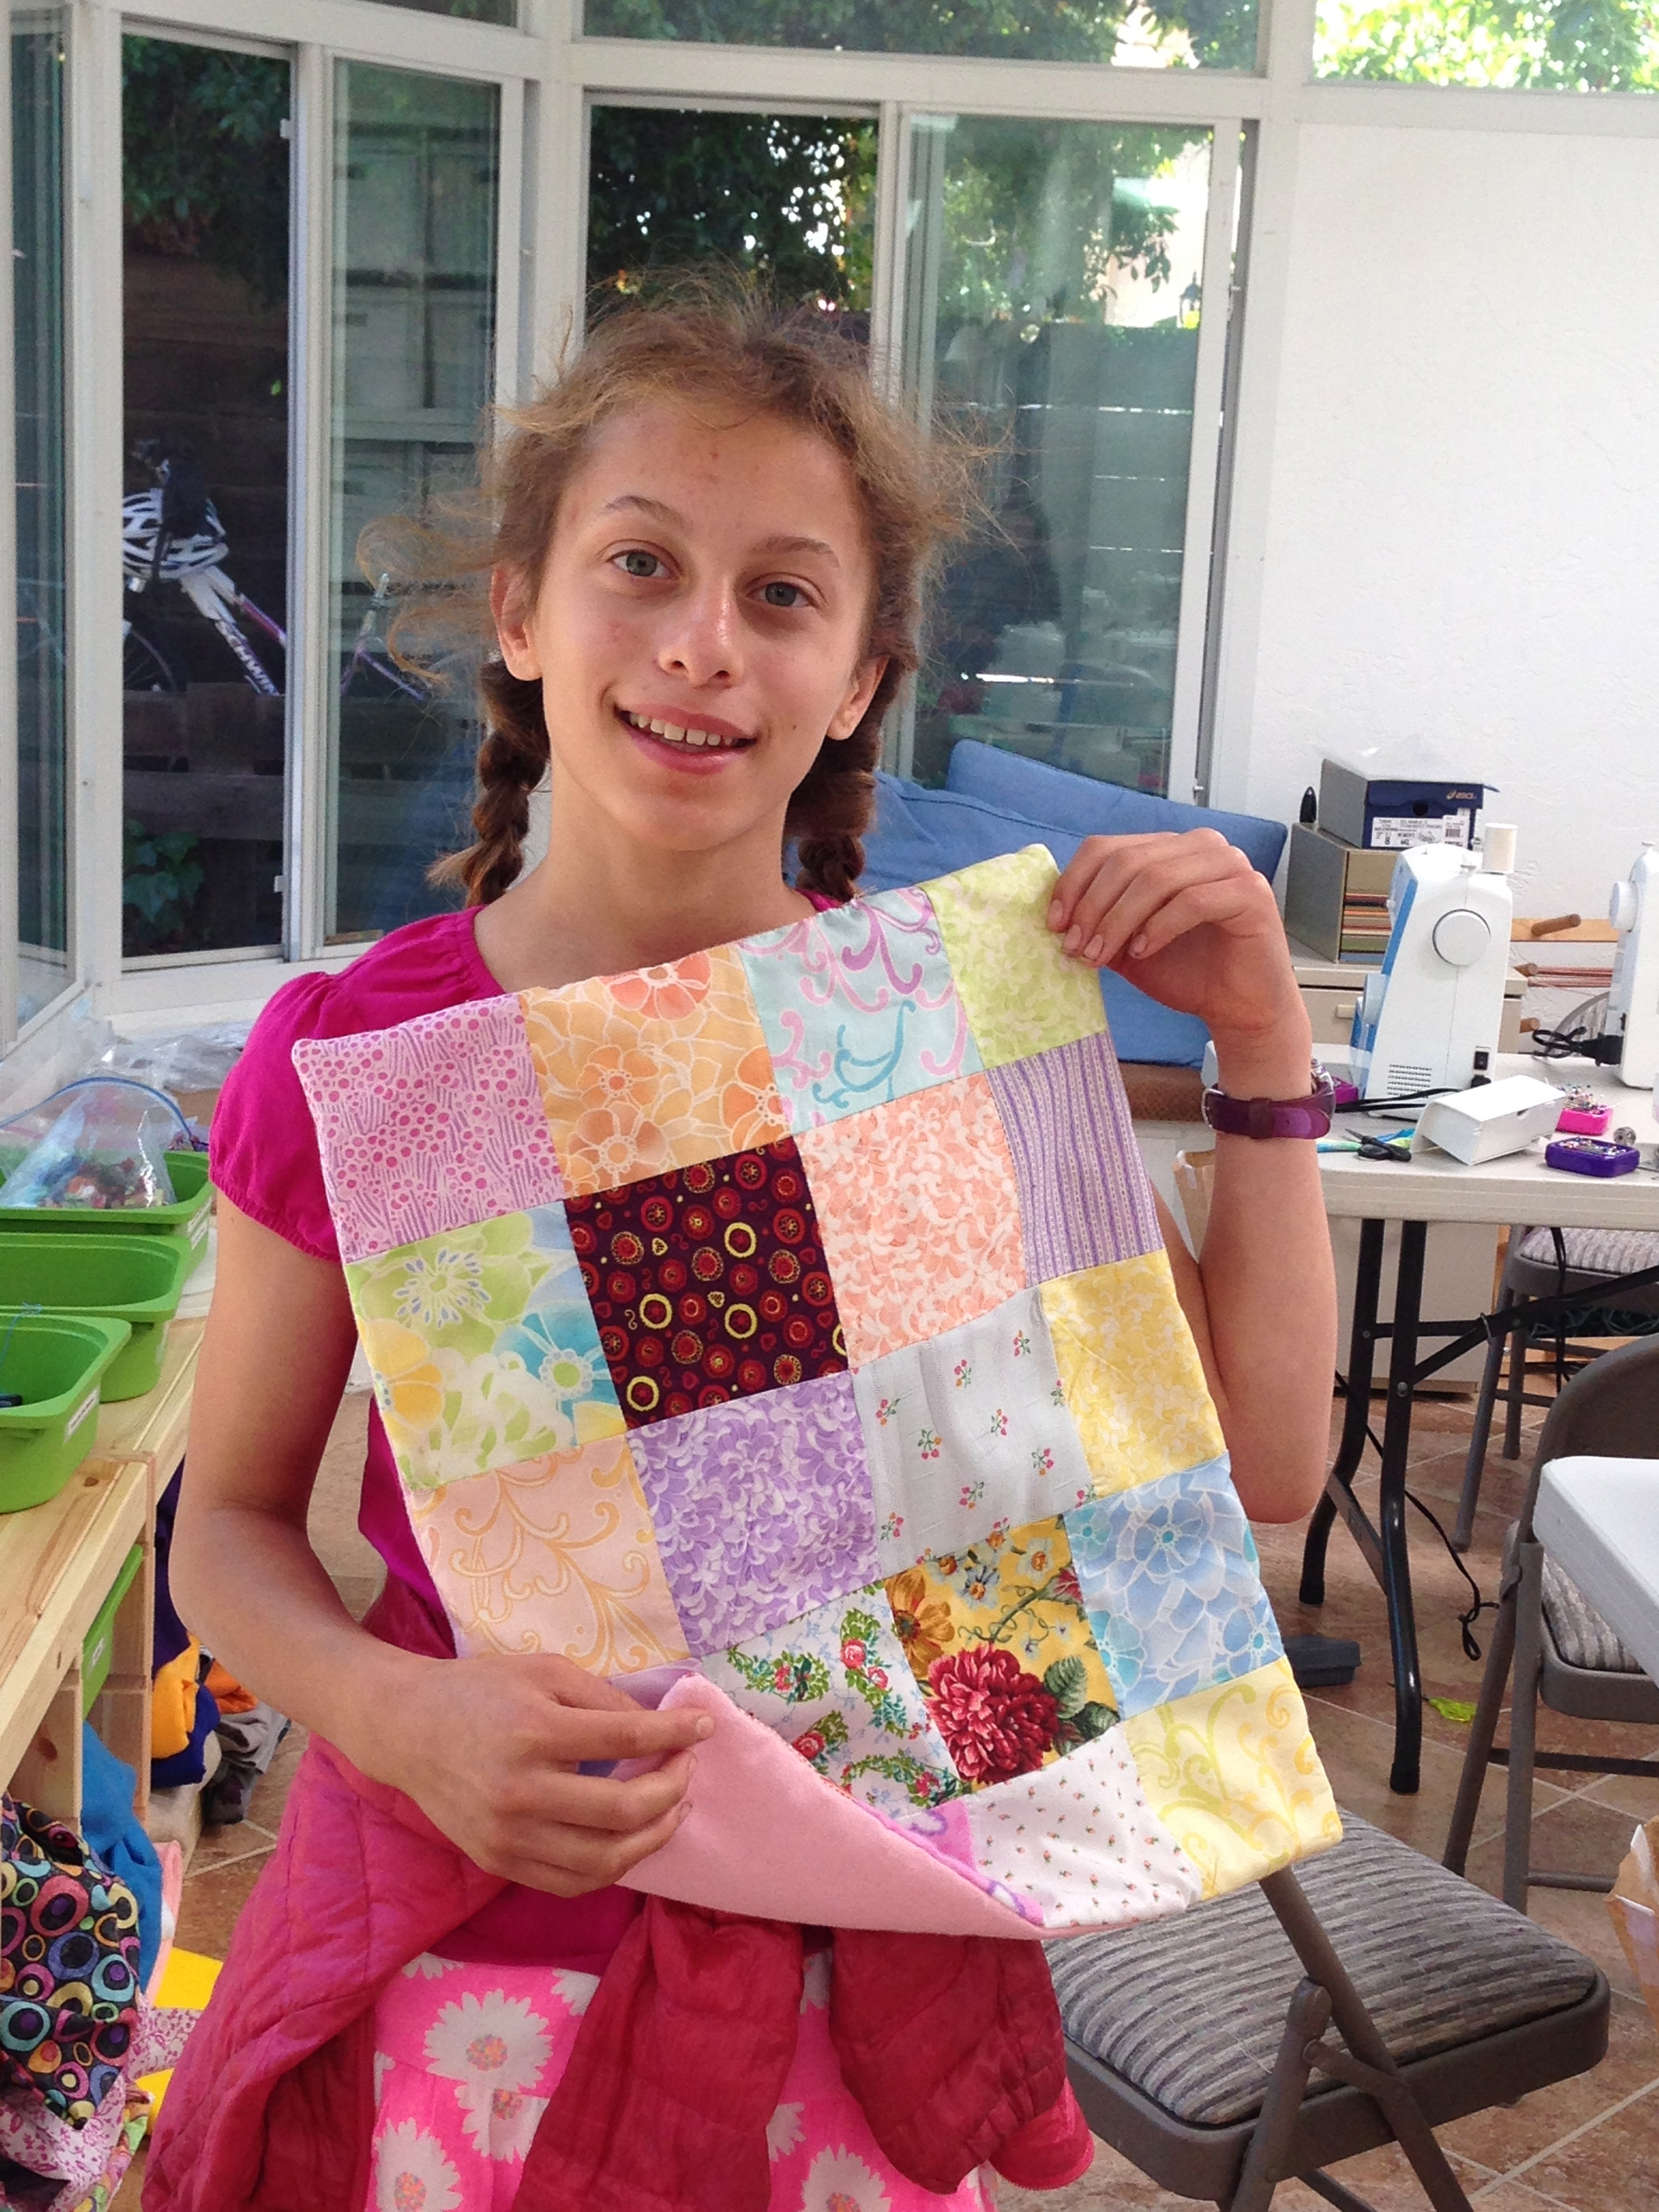 7th grader Pieced Quilt.